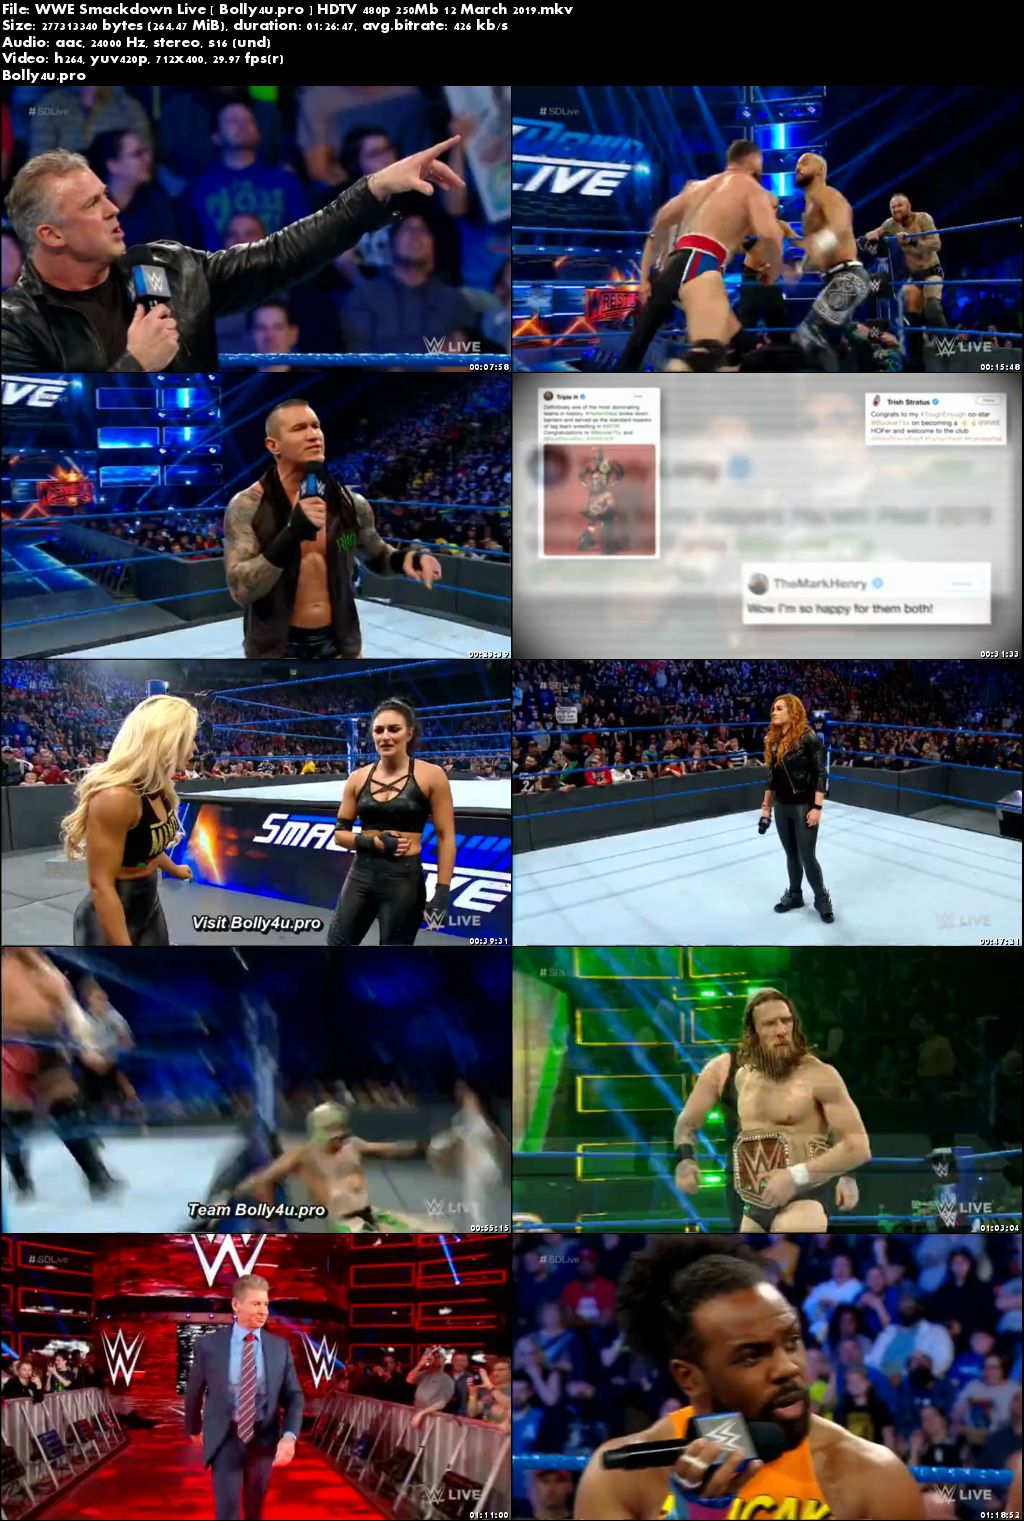 WWE Smackdown Live HDTV 480p 250Mb 12 March 2019 Download